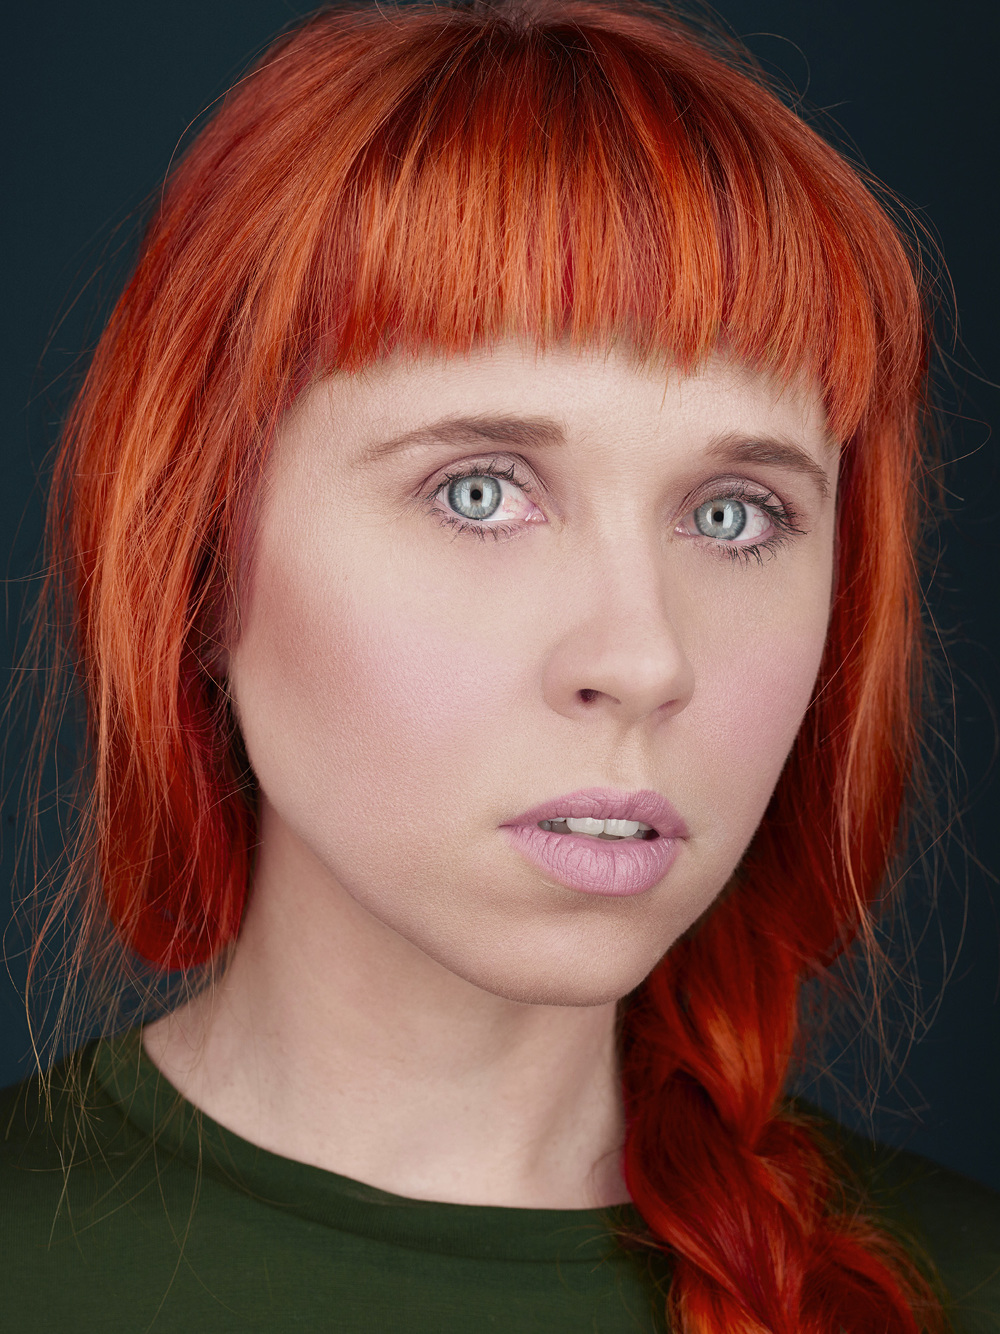 sonic architect holly herndon on bridging the gap between